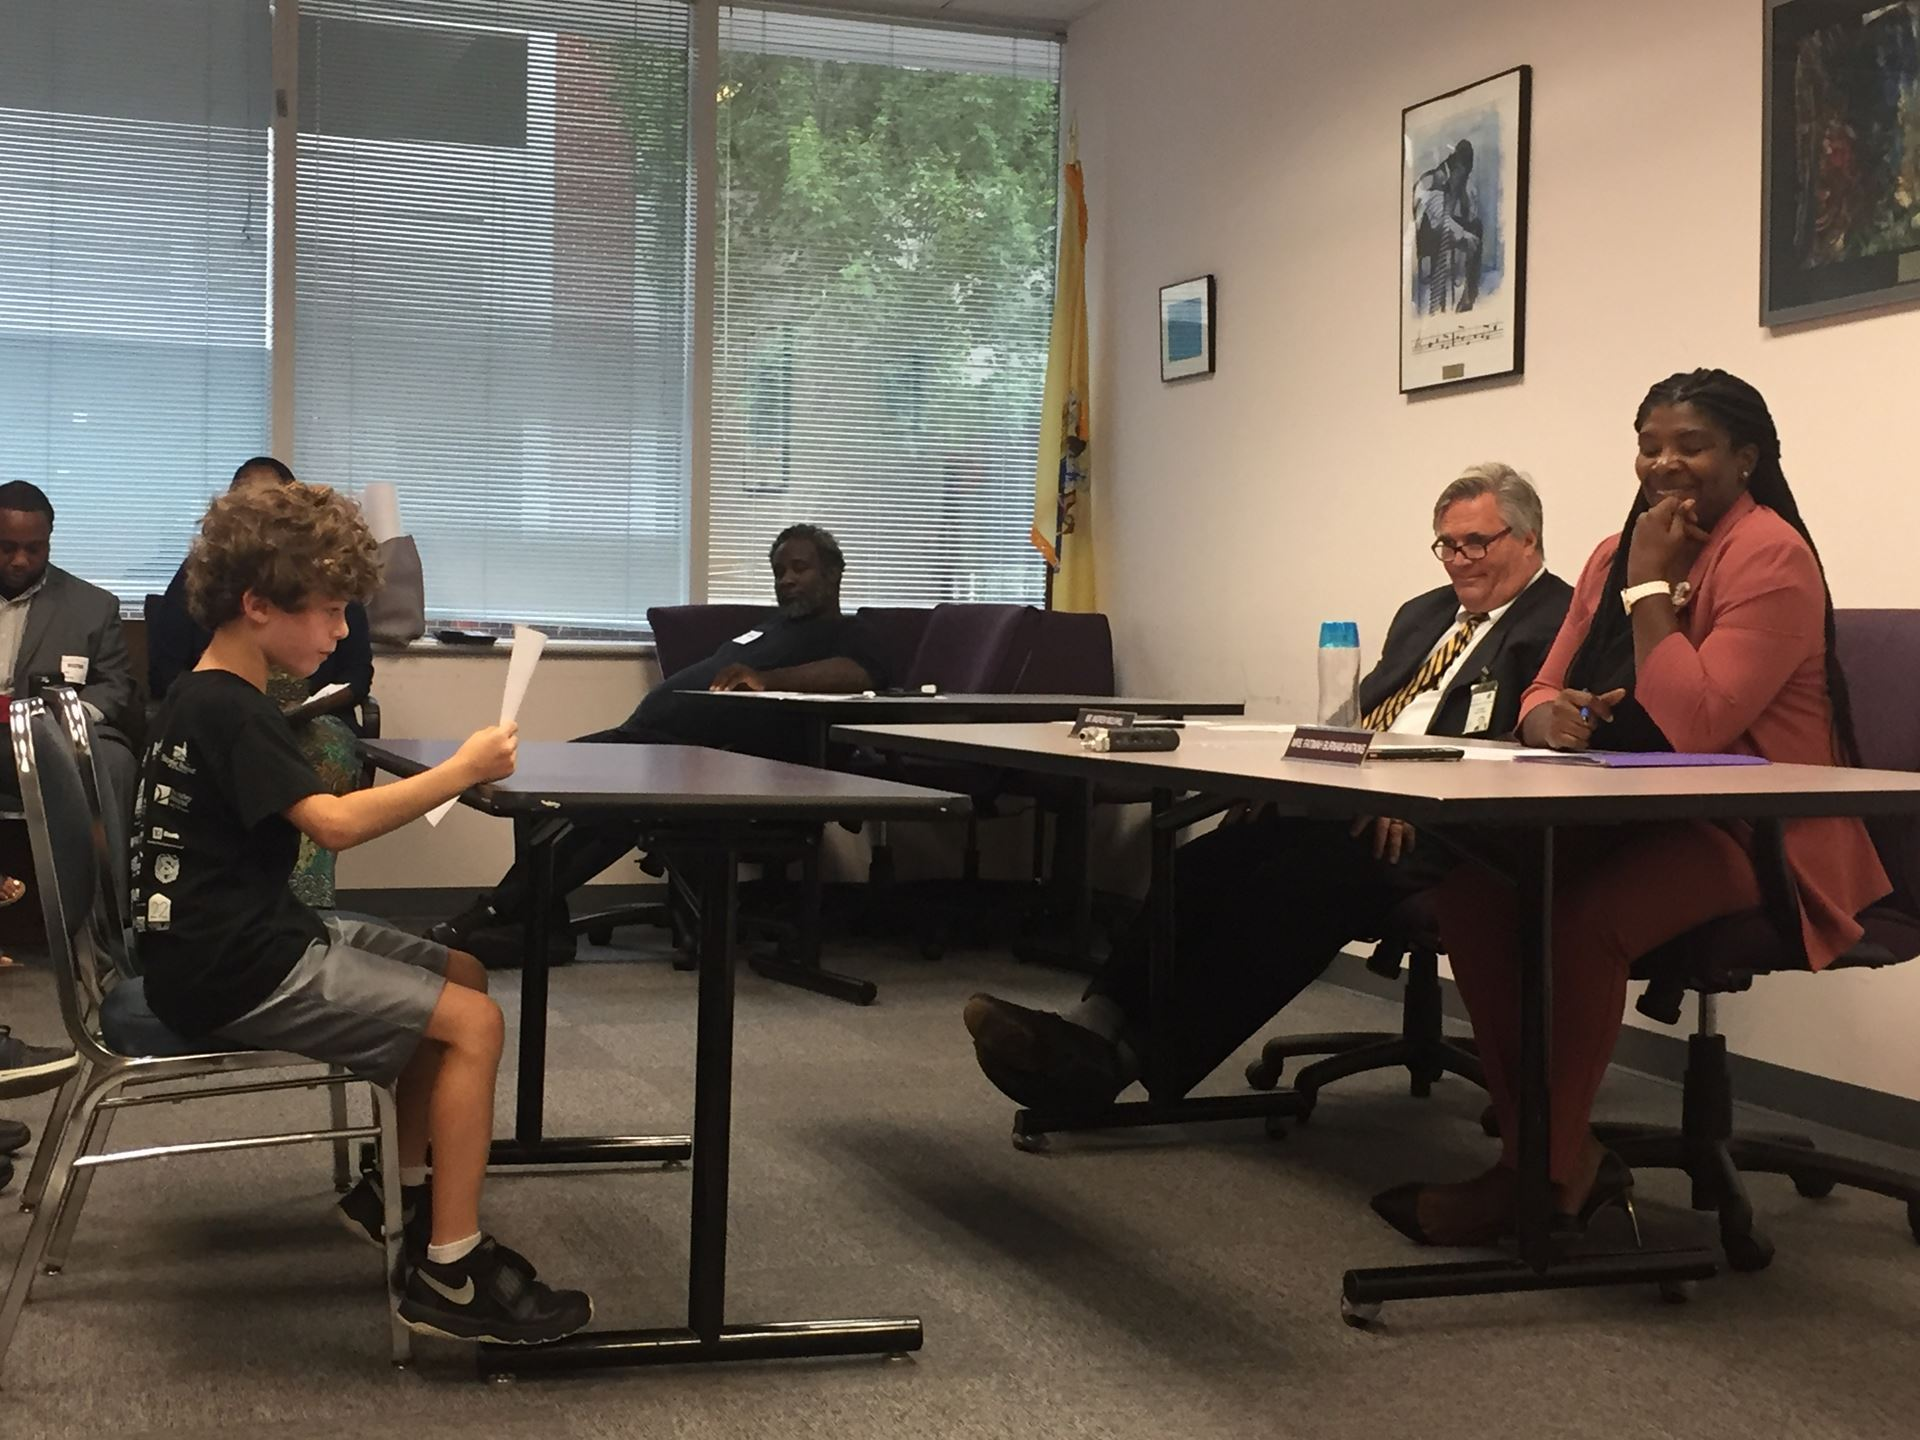 September 4 - NJ Parent, Jen Park and her son testified before the NJ State Board of Education during their open public testimony session on the value of and need for school library media specialists.